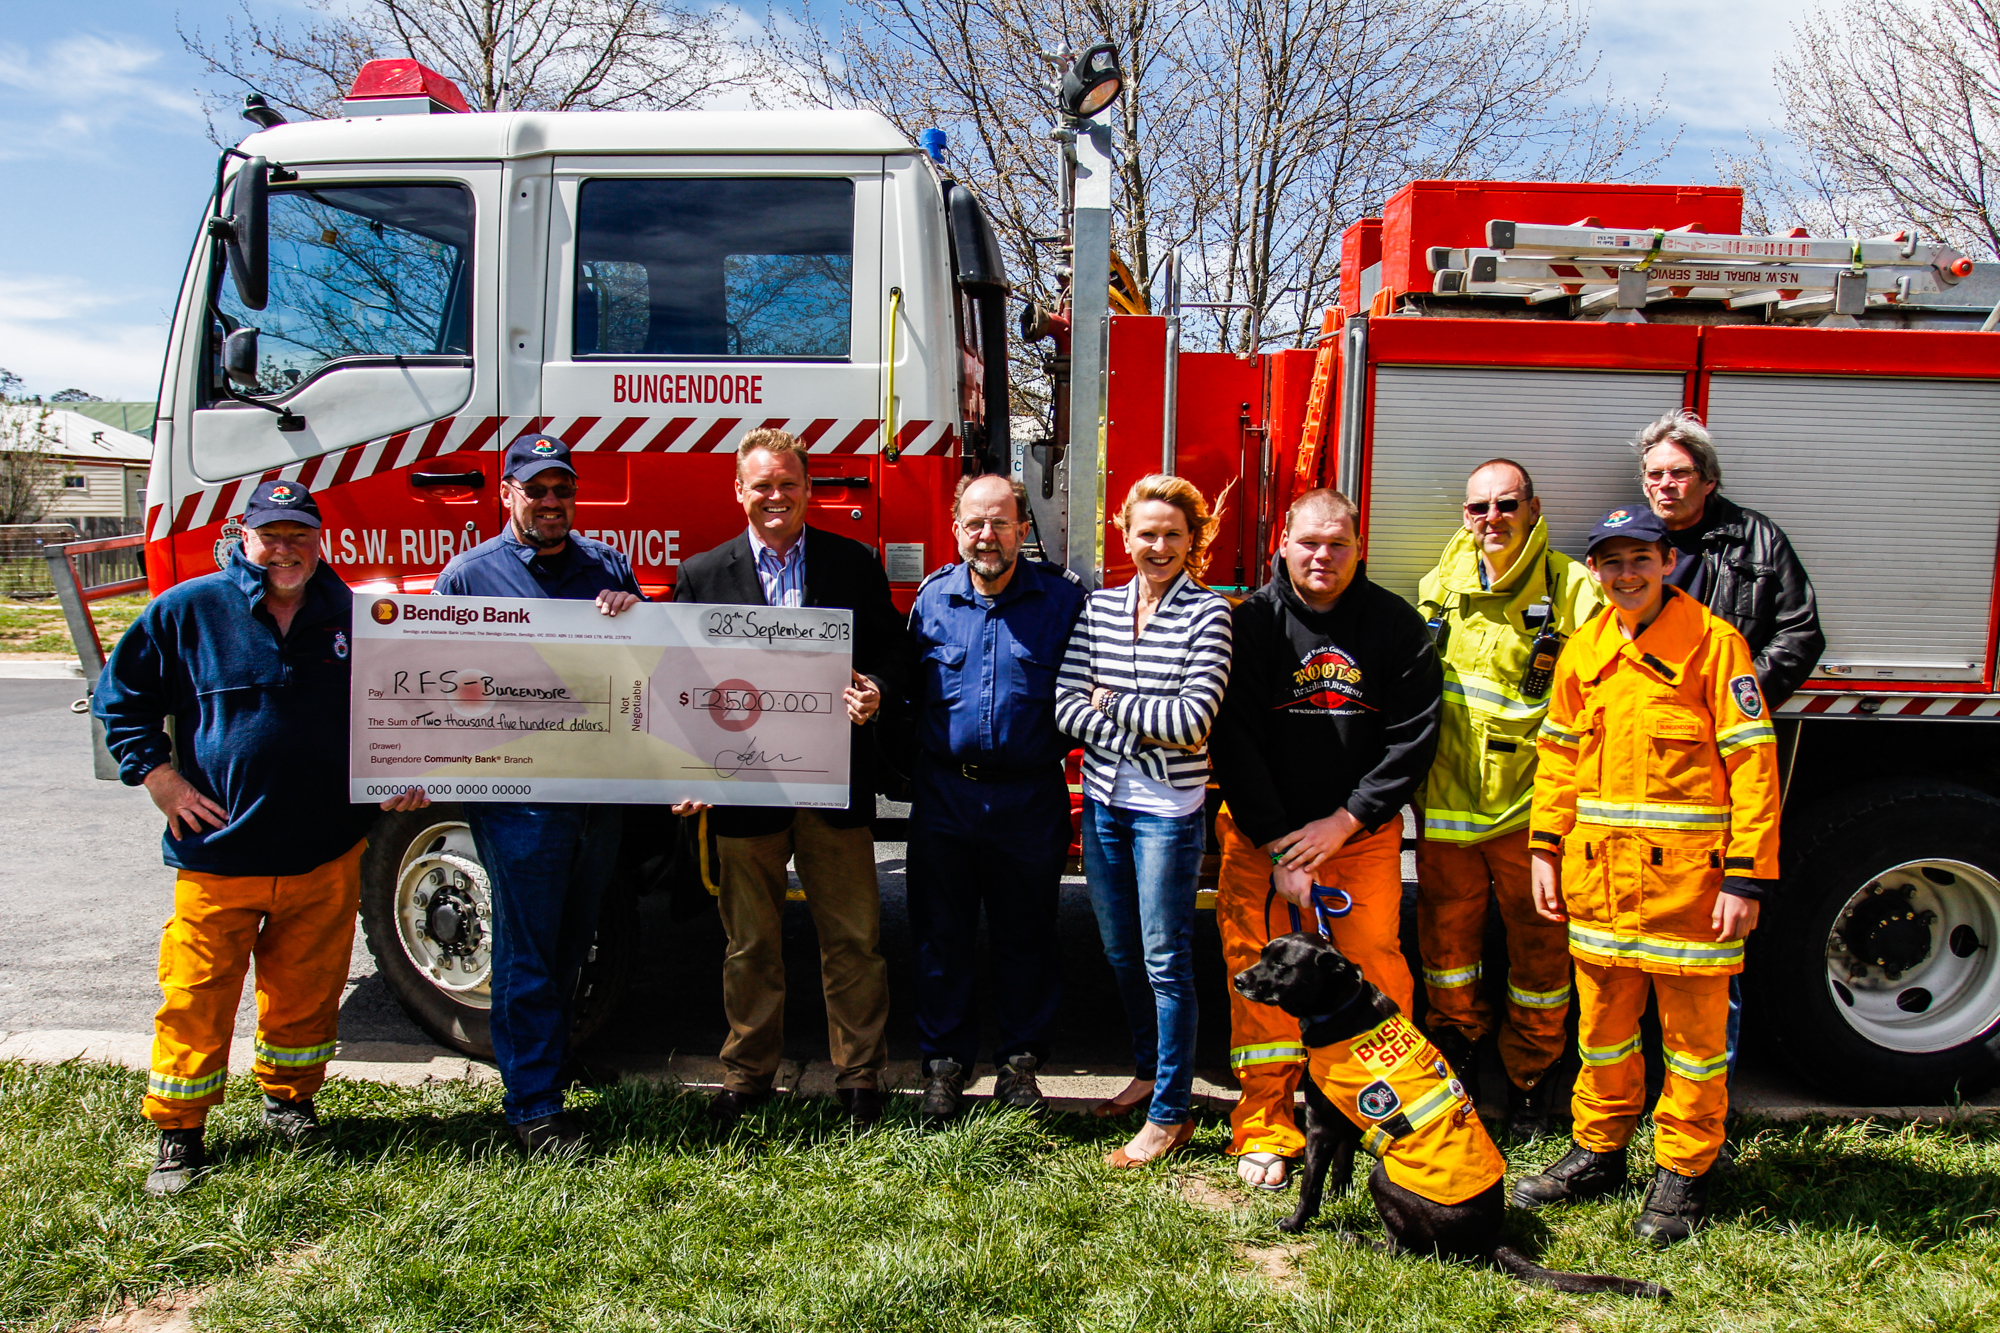 Presentation of the Donation during our open day.